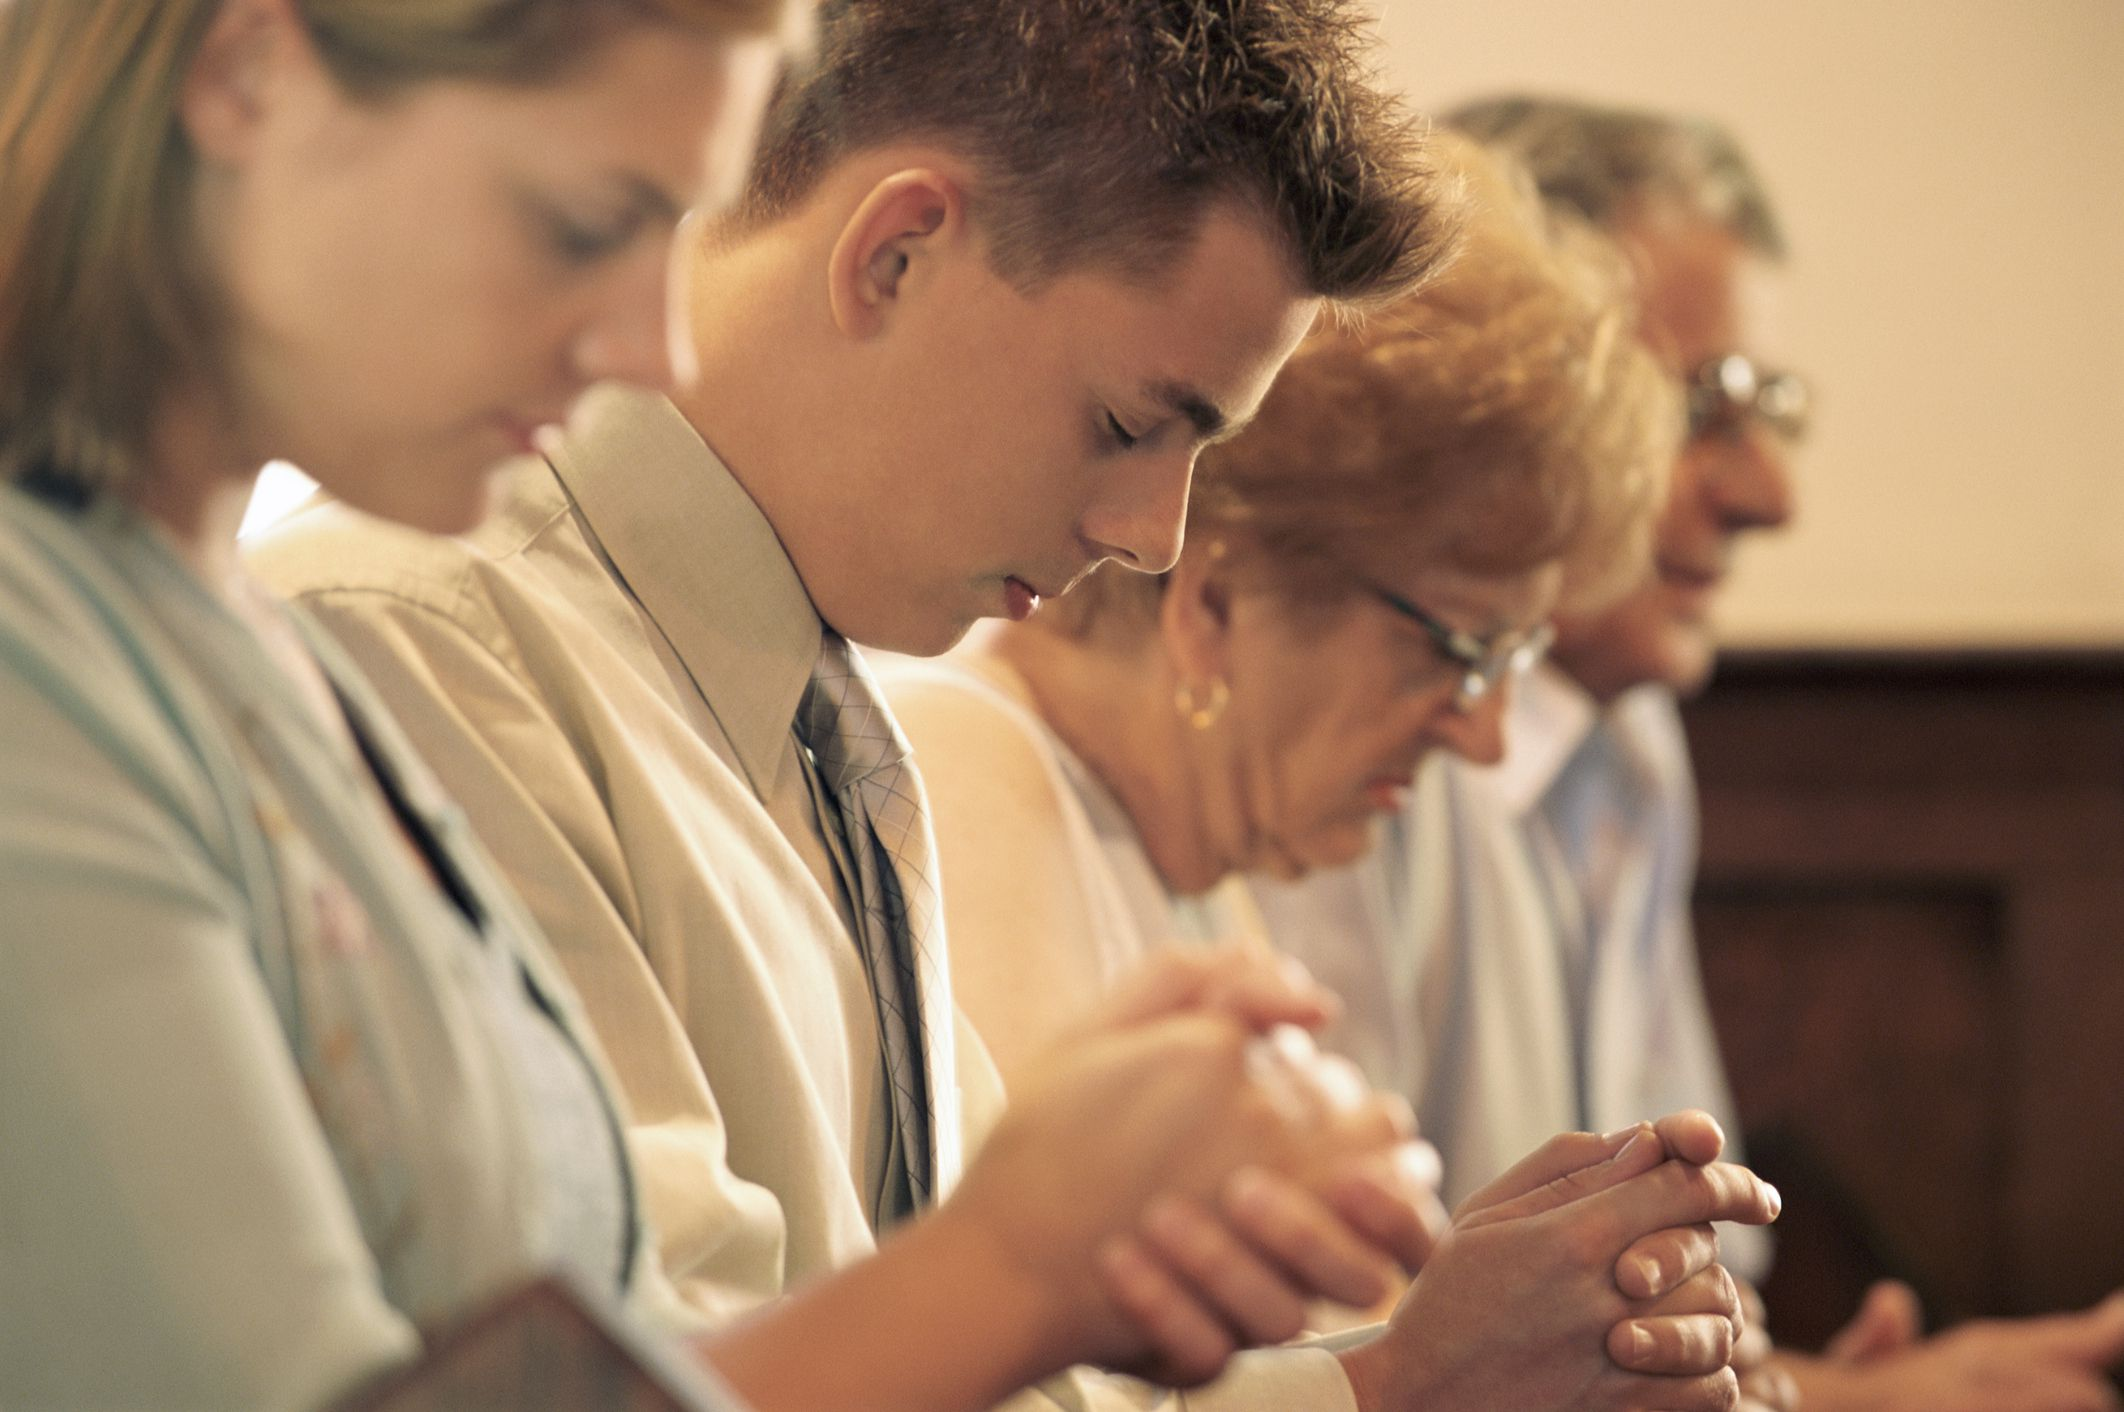 8 Tips for Church Etiquette